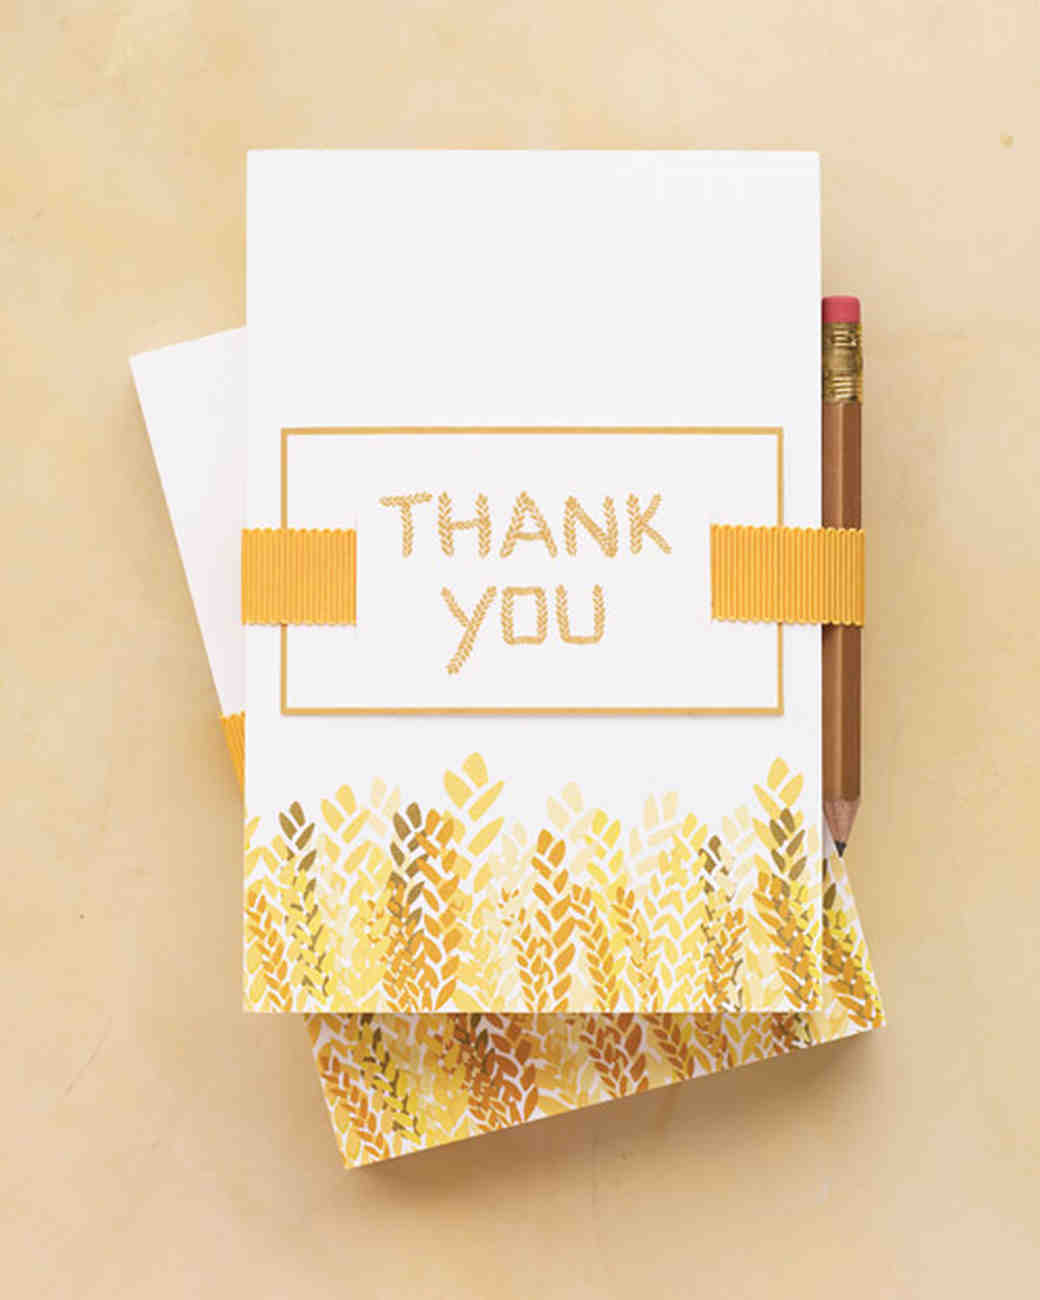 9 Tips For Writing Thank You Notes For Wedding Gifts | Martha Stewart  Weddings